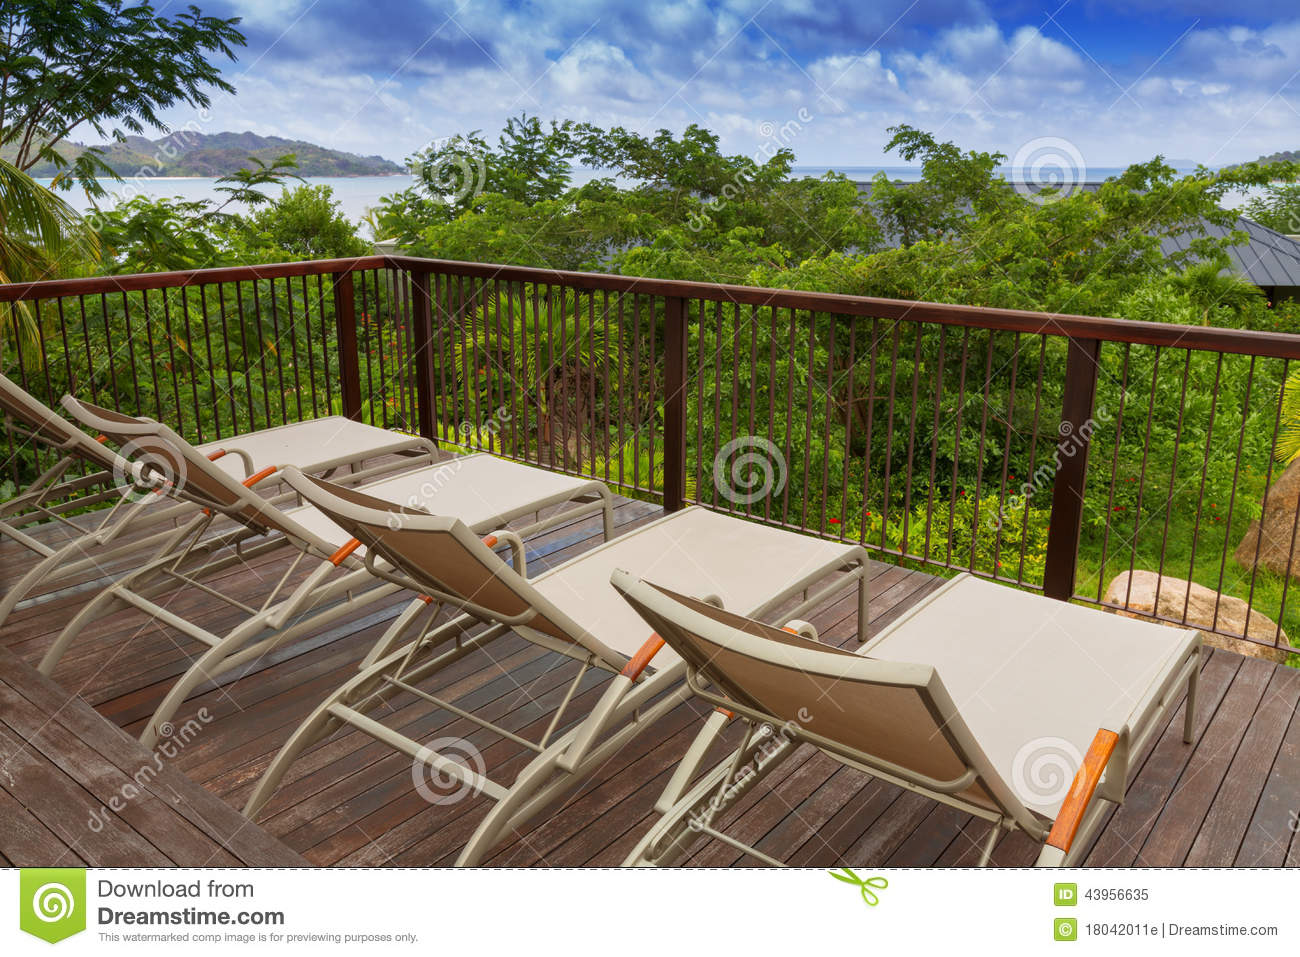 Sunbathing Chairs Sunbathing Chairs On Wooden Decking Stock Photo Image